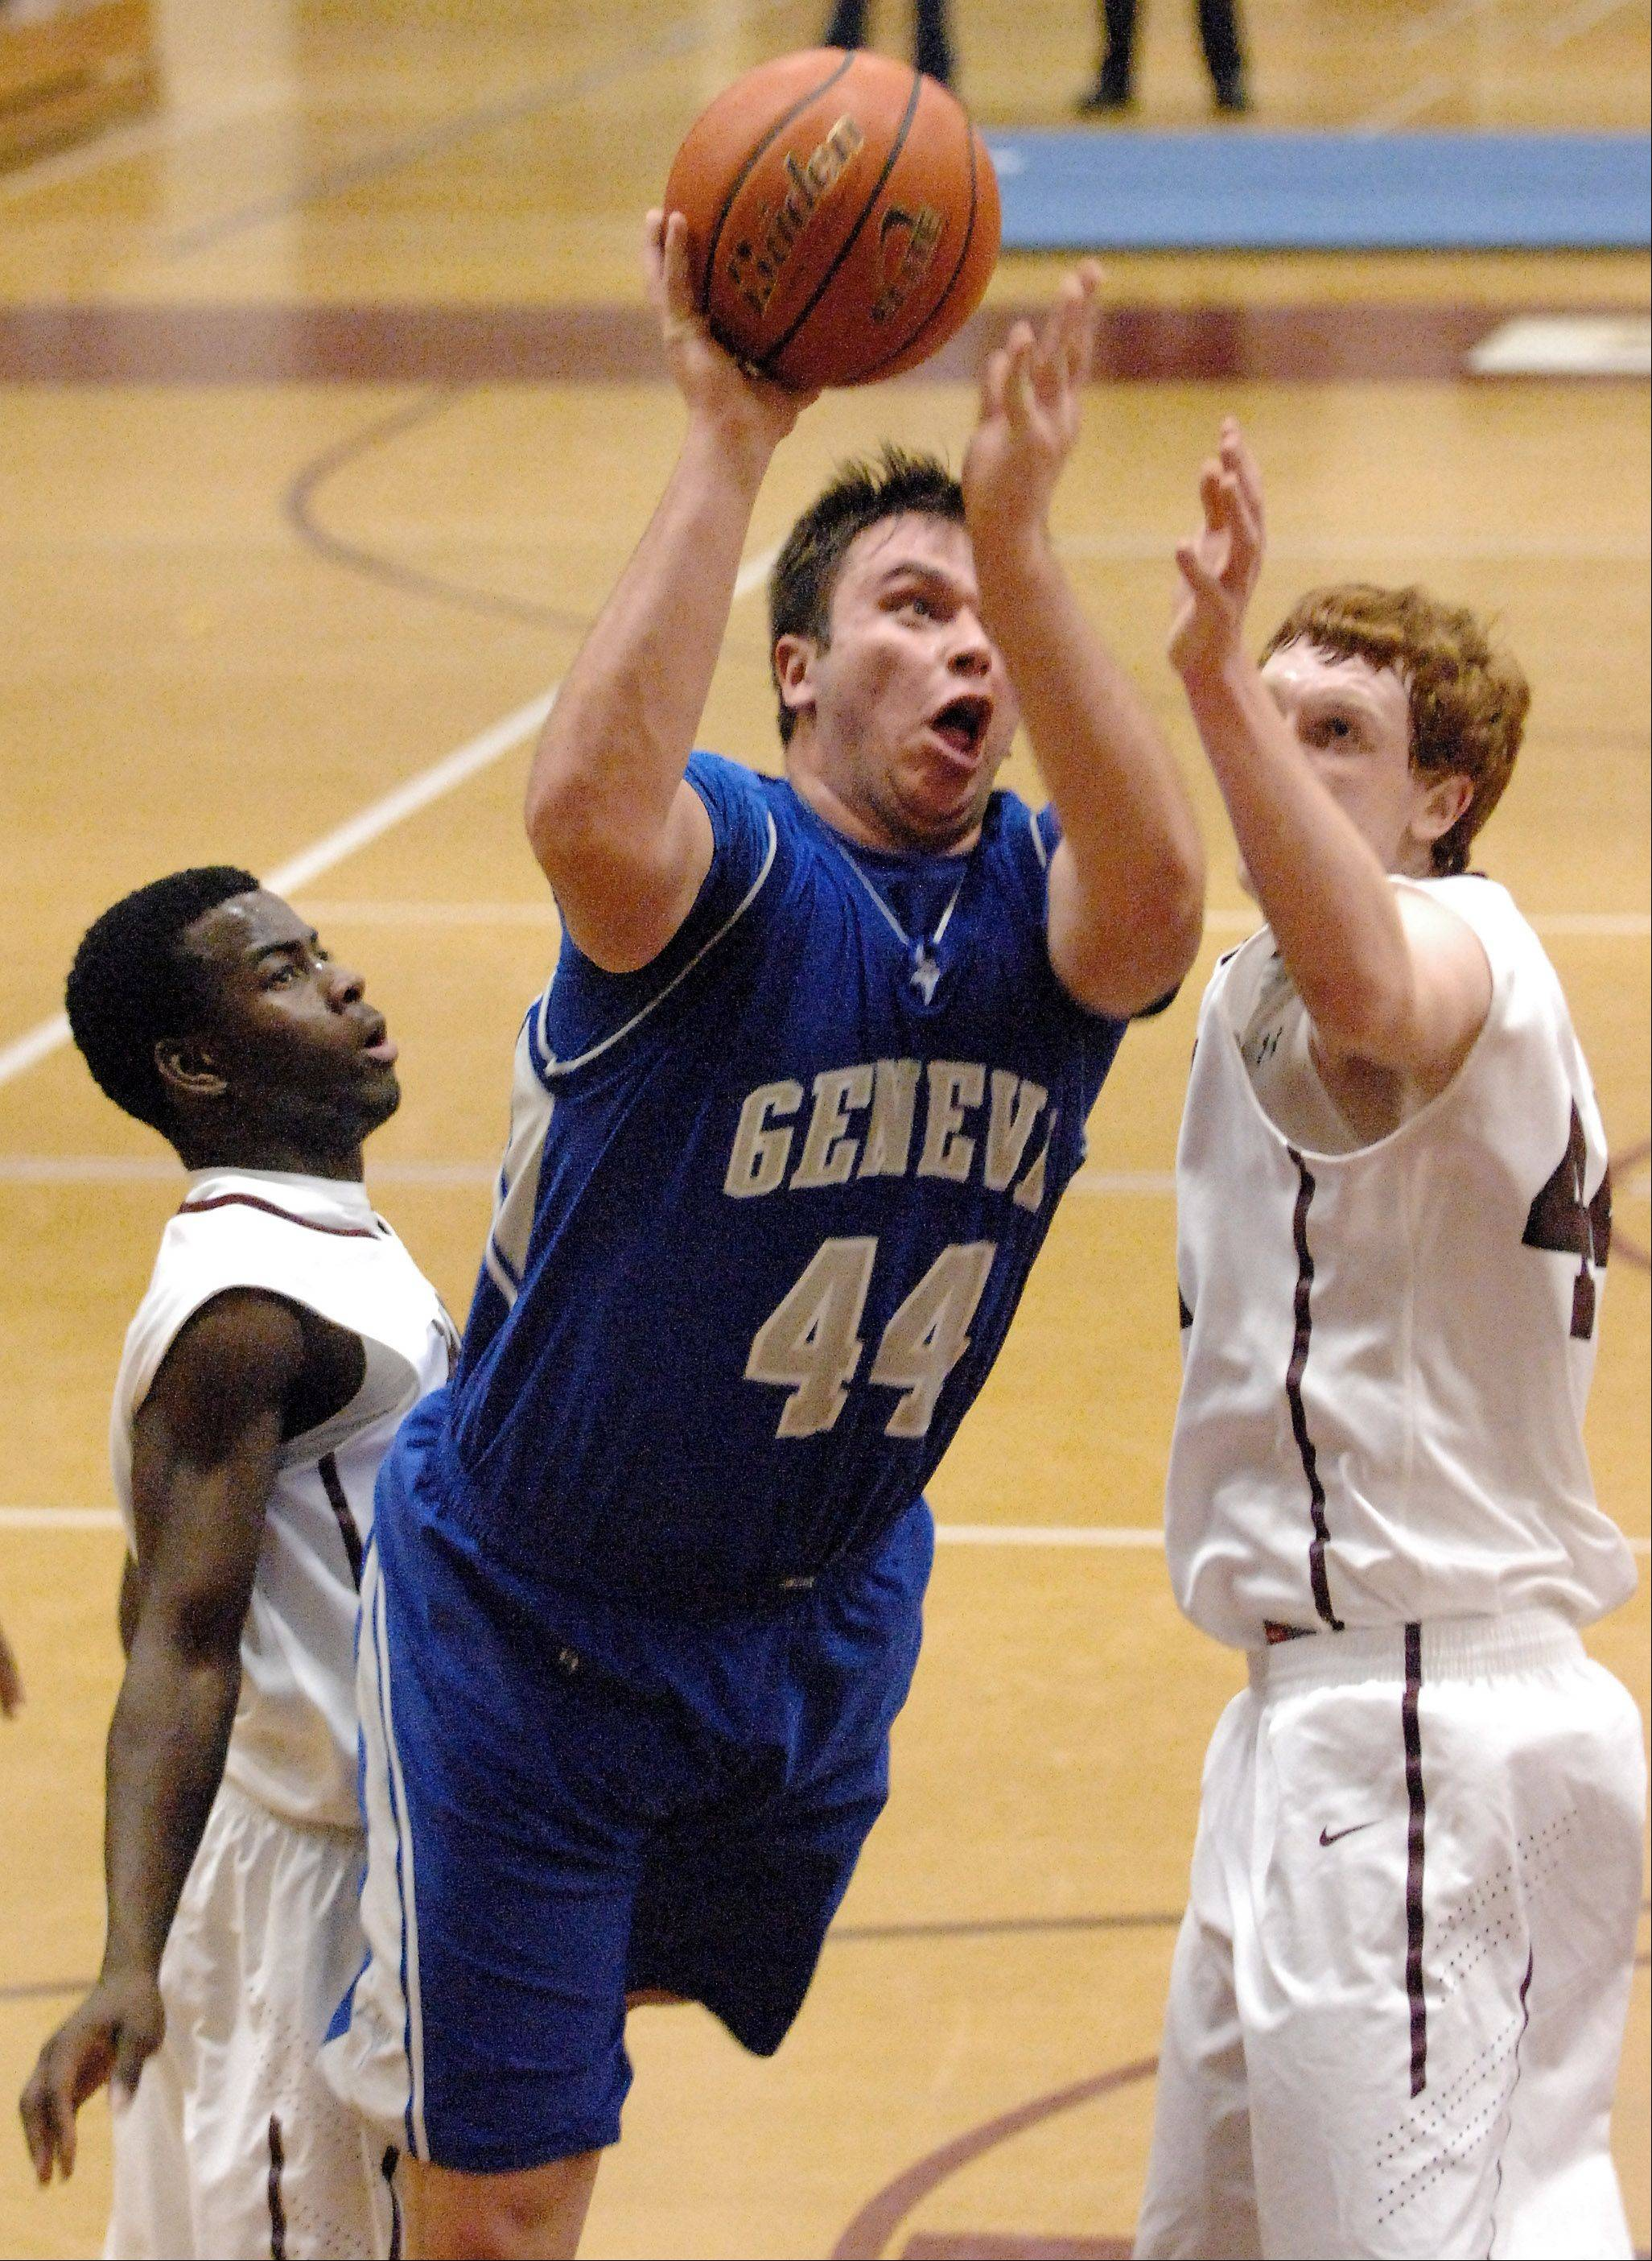 Geneva's Connor Chapman splits a pair of Elgin defenders and puts up a shot during Thursday's game in Elgin.